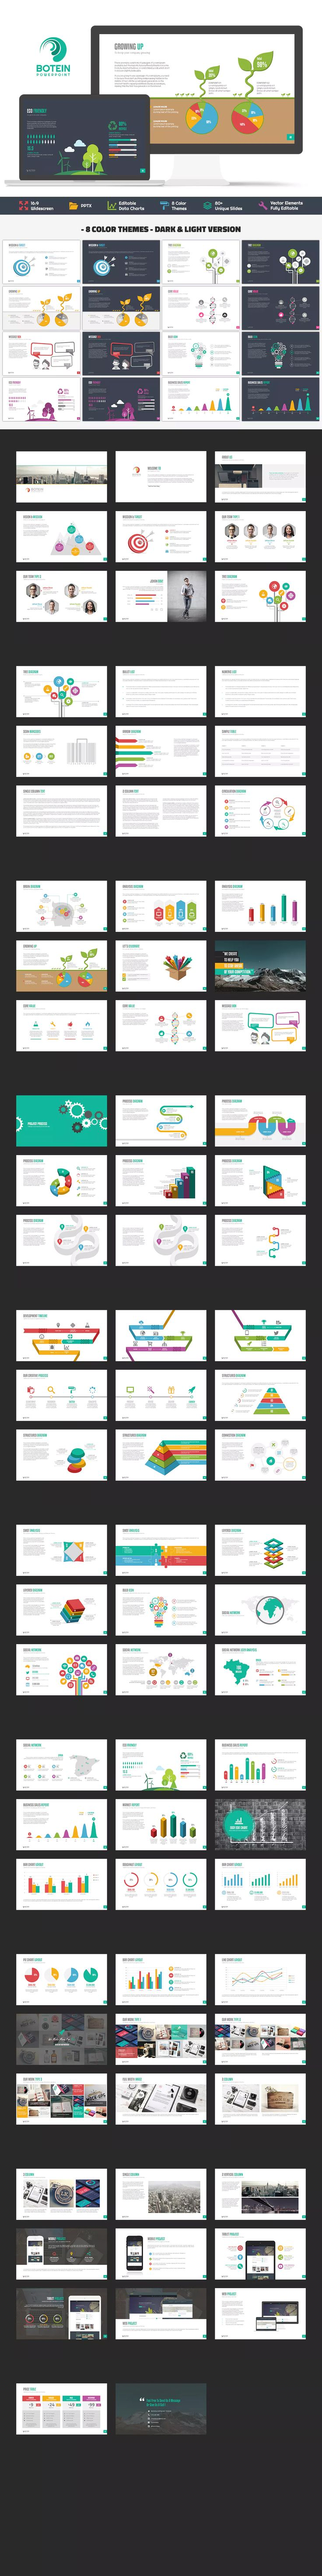 The 25 best Powerpoint presentations ideas on Pinterest